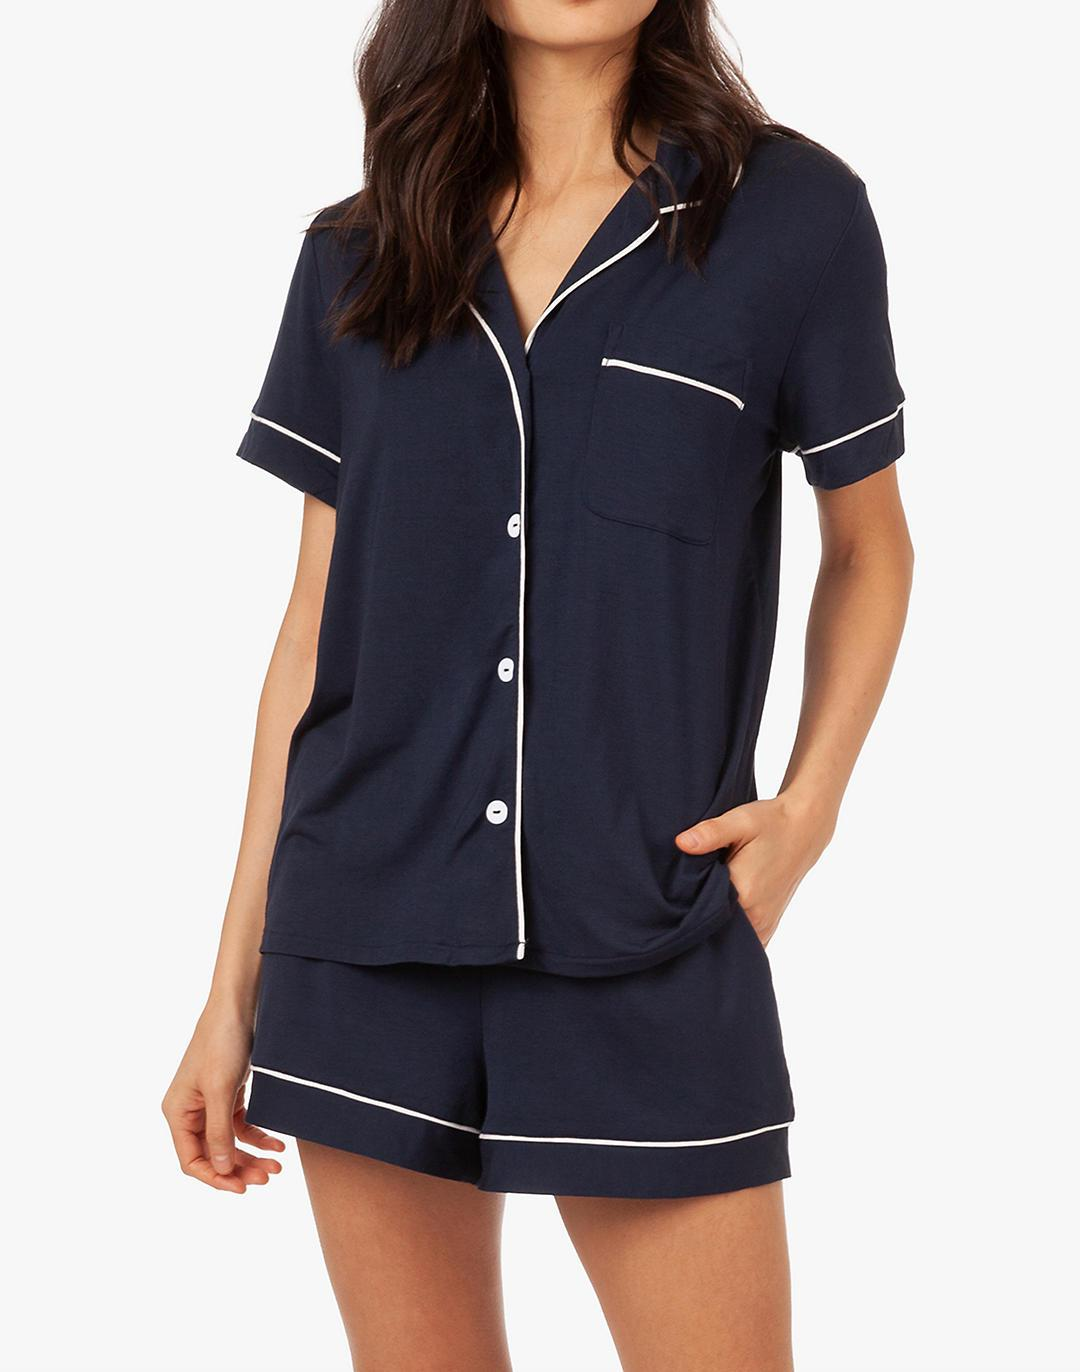 LIVELY The All-Day Short Sleeve Shirt